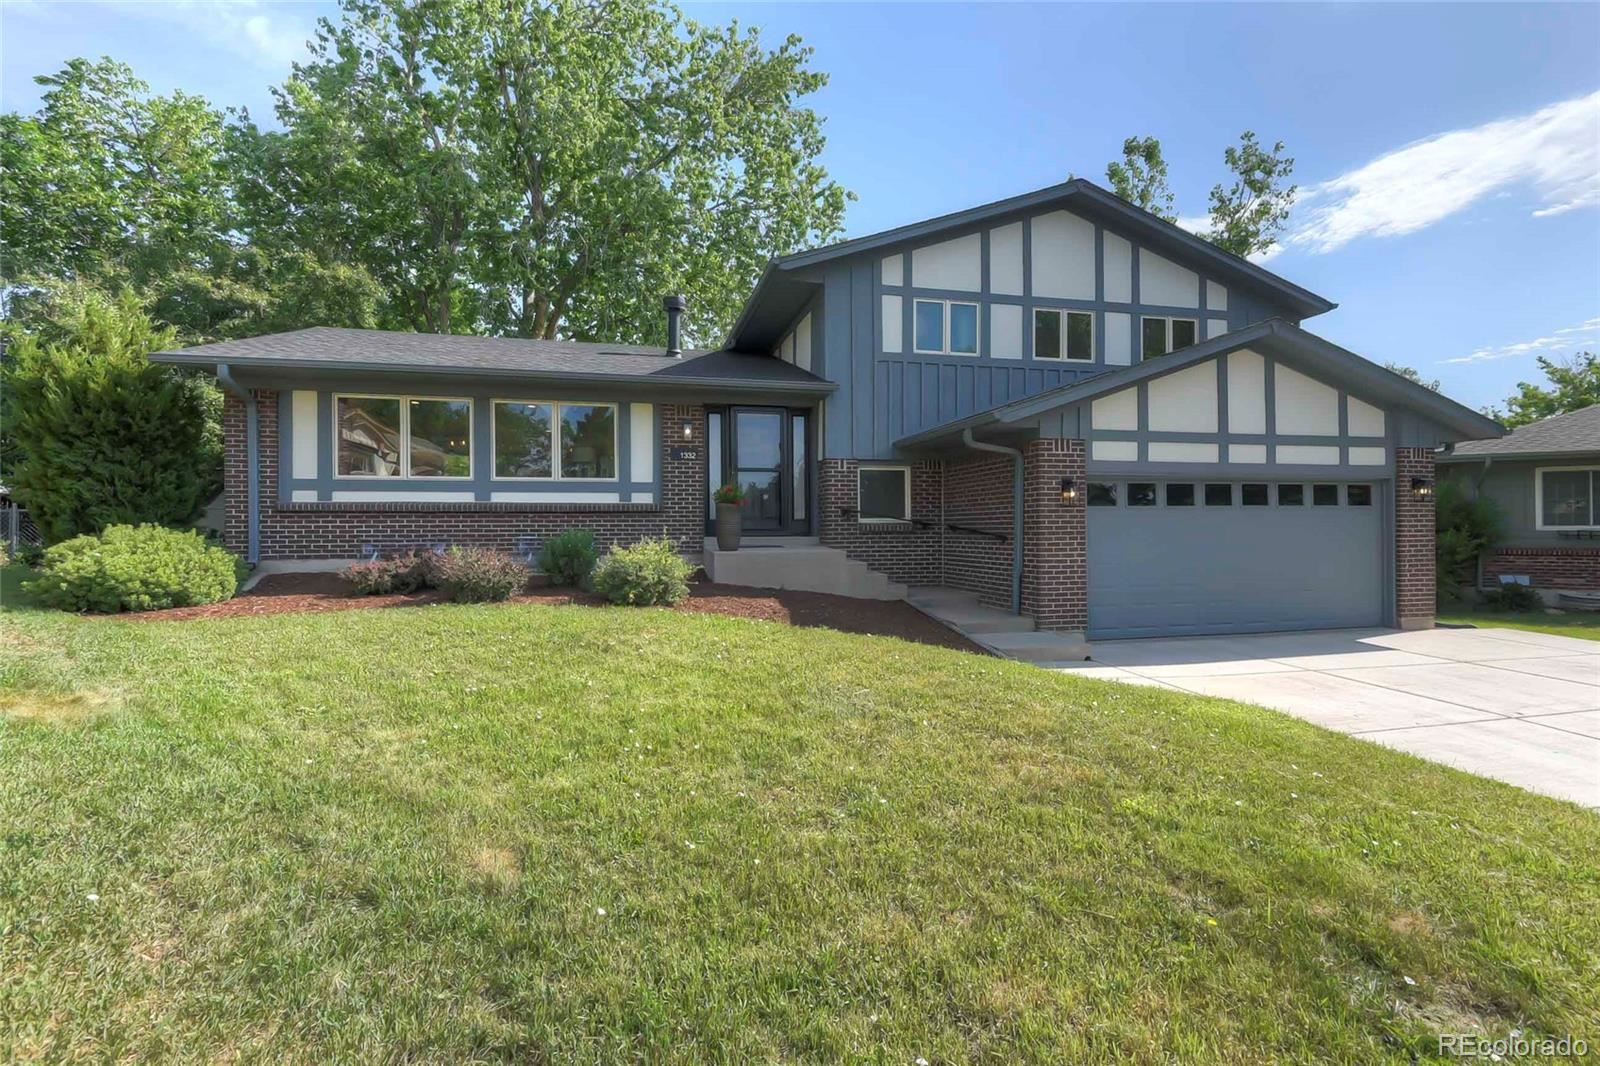 1332 S Yank Street, Lakewood, CO 80228 - #: 8396916